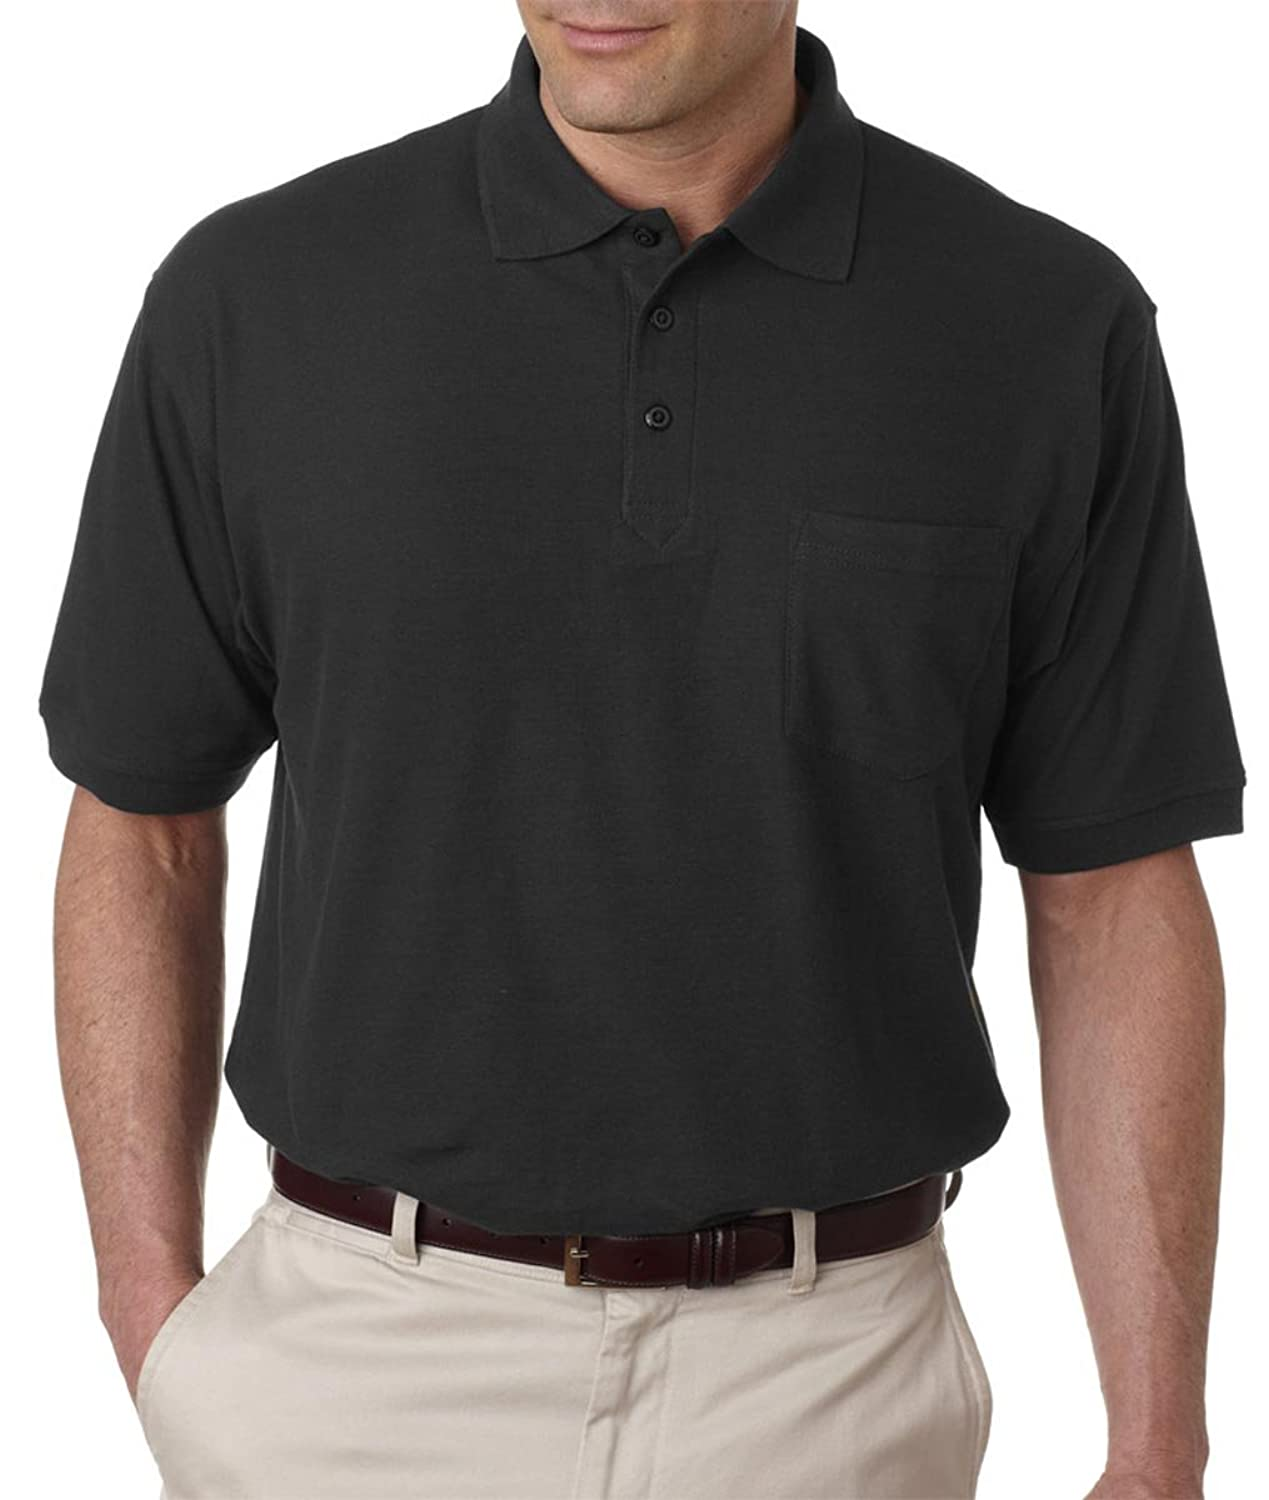 Ultra Club Adult Whisper Pique Polo Shirt with Pocket, L, Navy